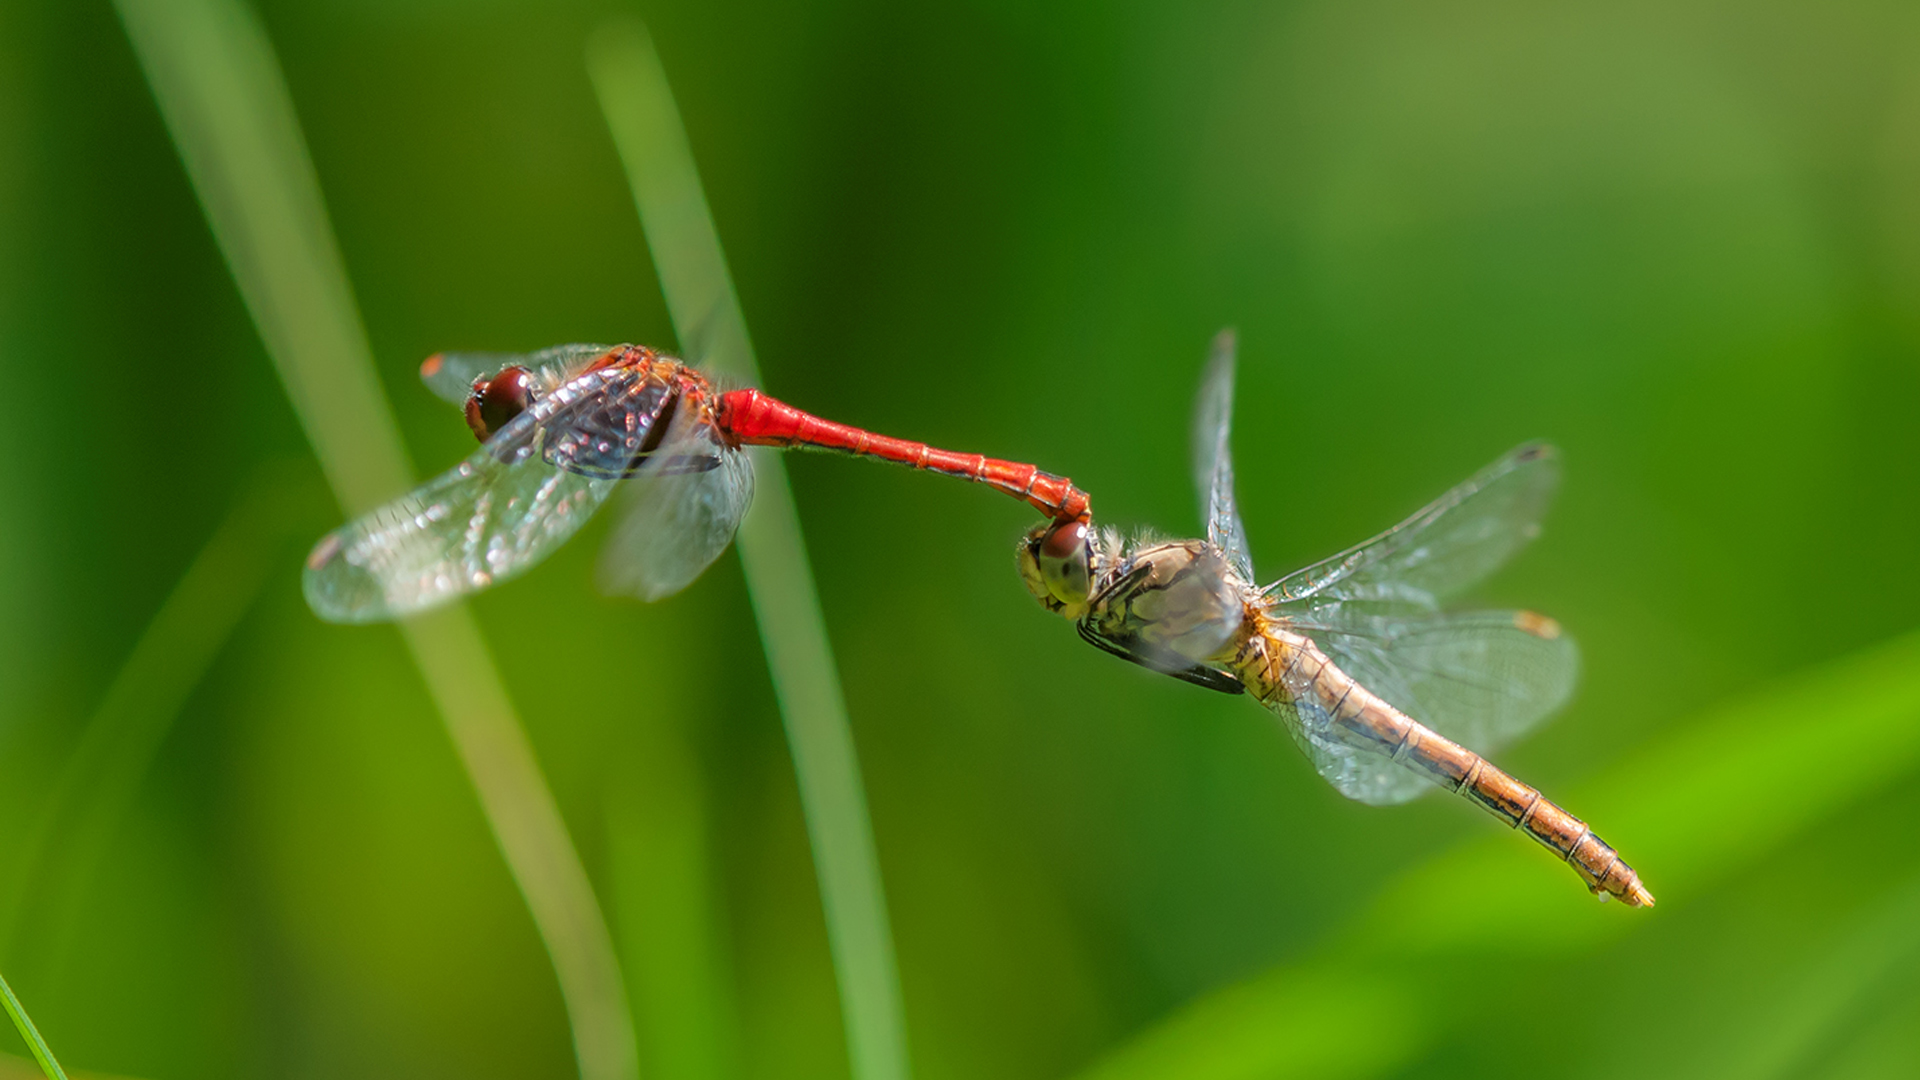 Dragonfly-Stock-Image-Image-×-Dragonfly-Adorable-Wa-wallpaper-wp3804909